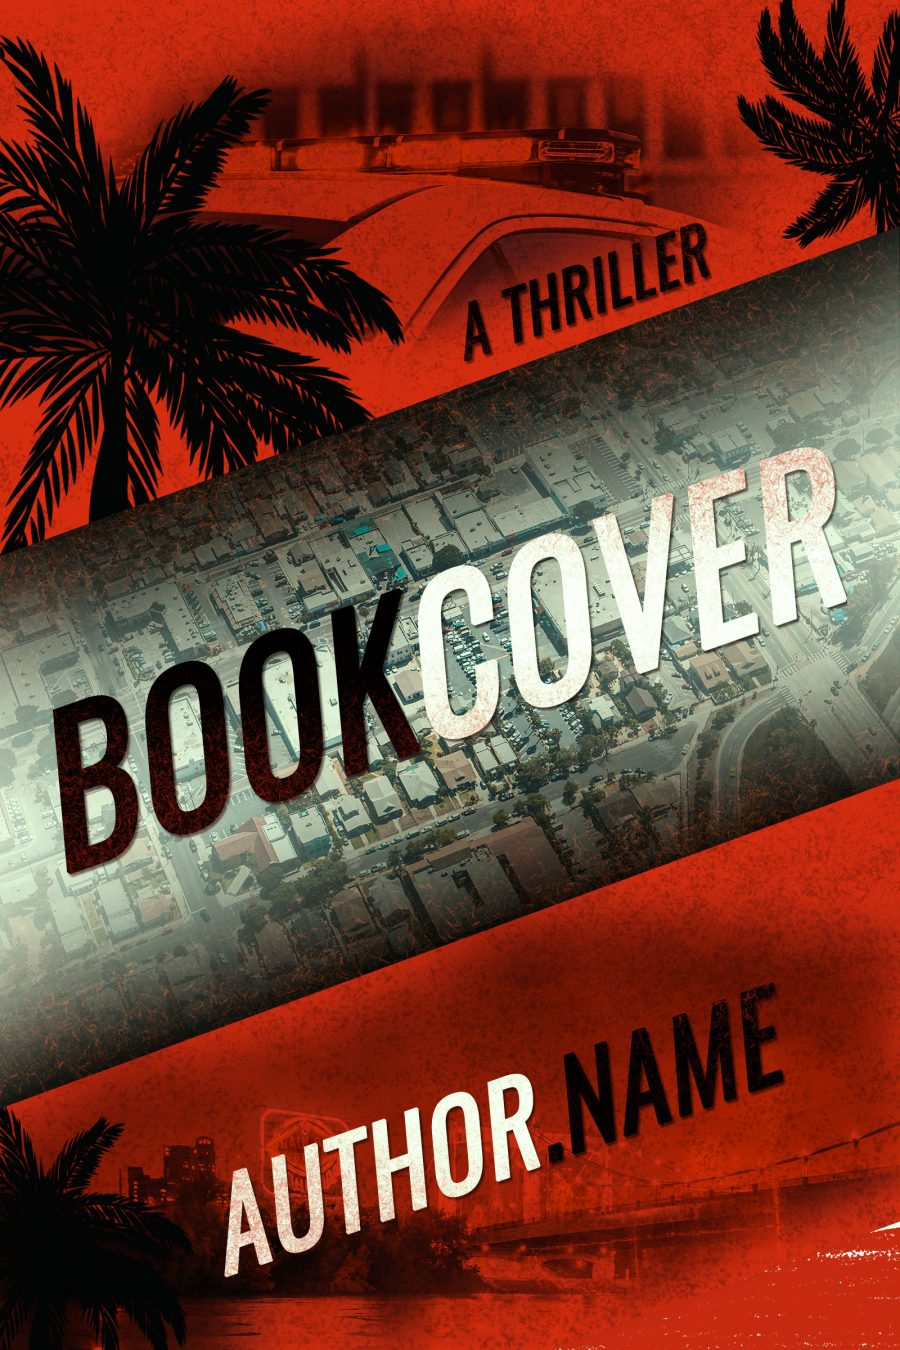 A thriller premade book cover made by pora's designs